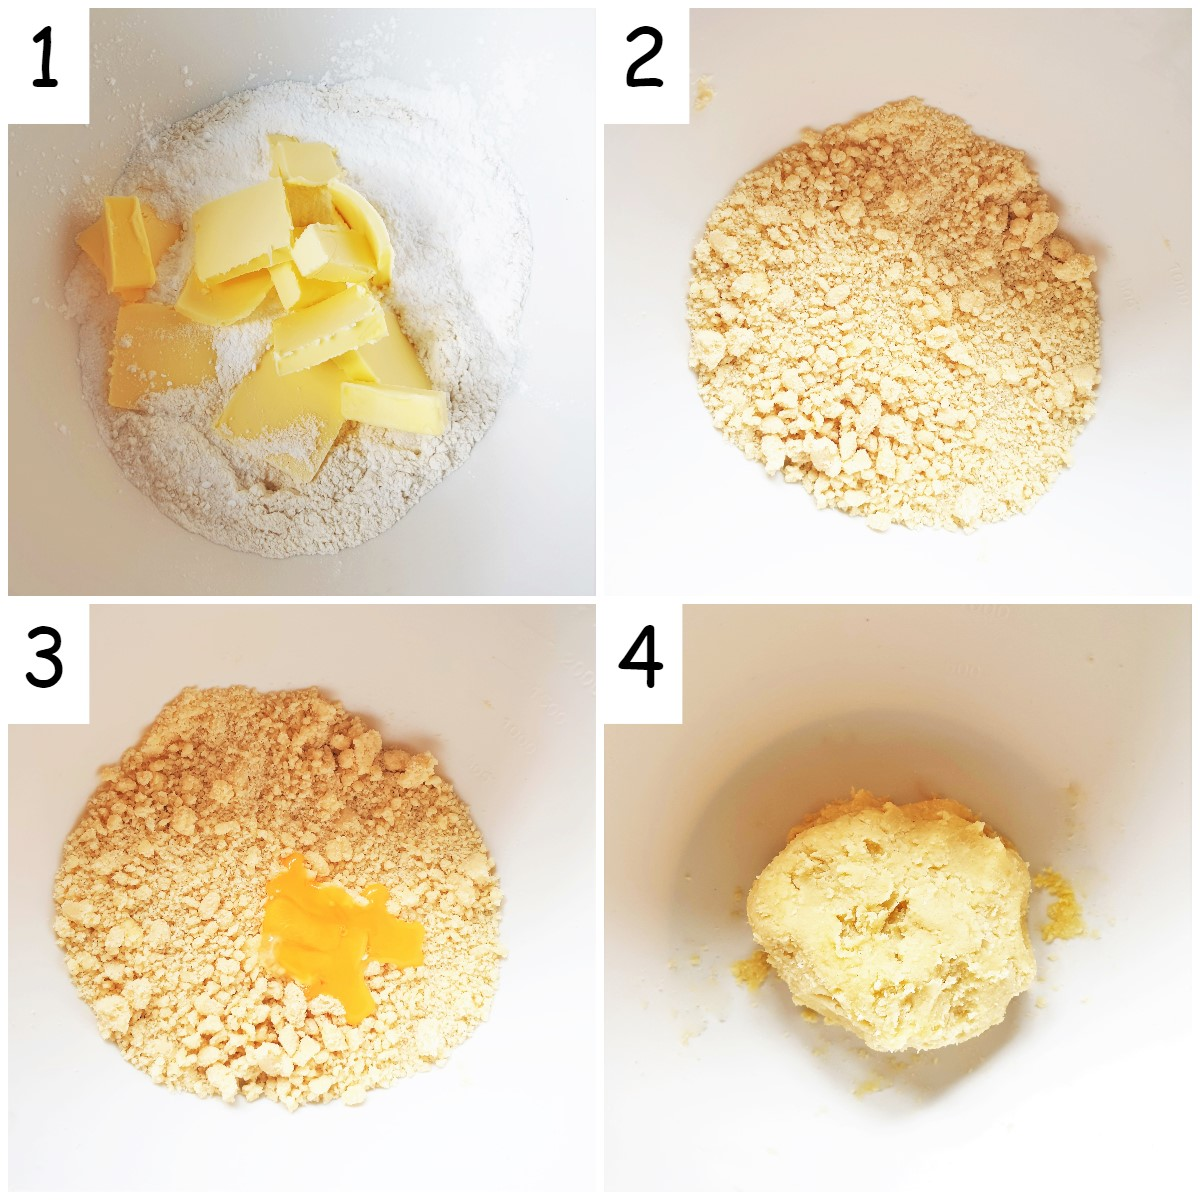 Four images showing steps for mixing pistachio butter biscuits.